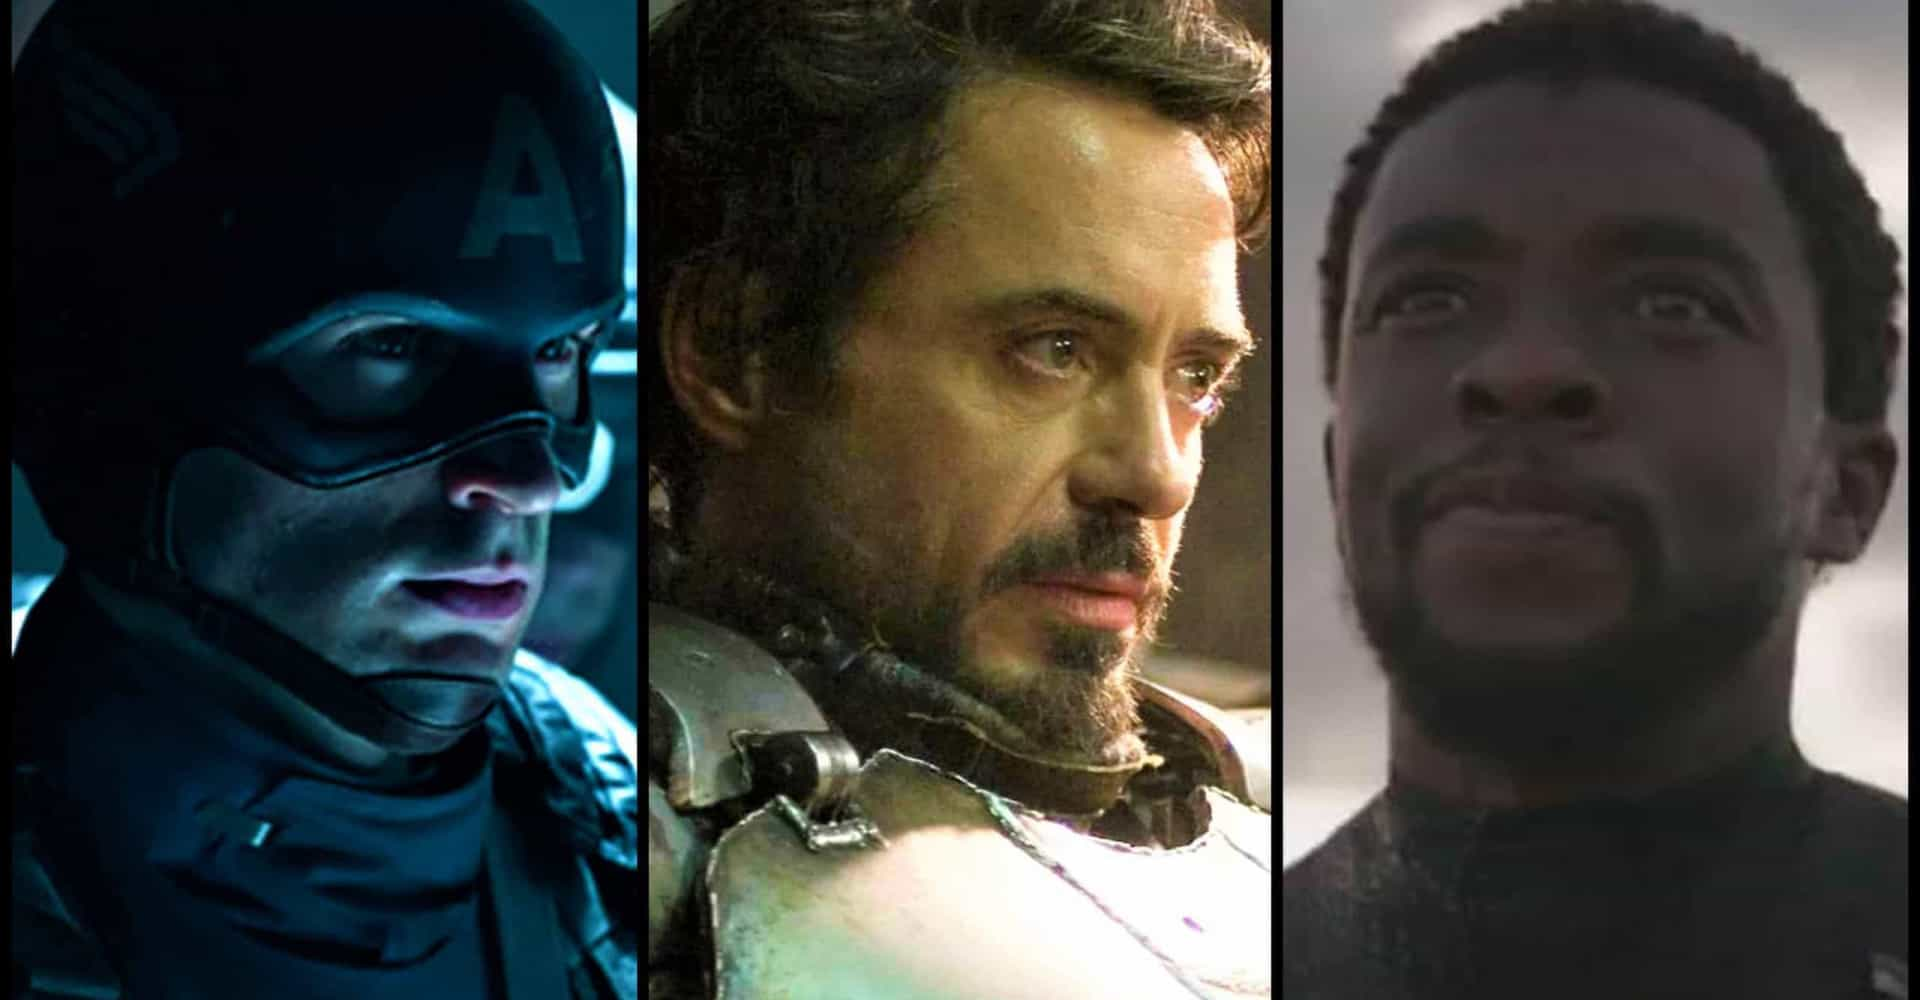 From beginning to 'Endgame': How to watch the 'Avengers' movies